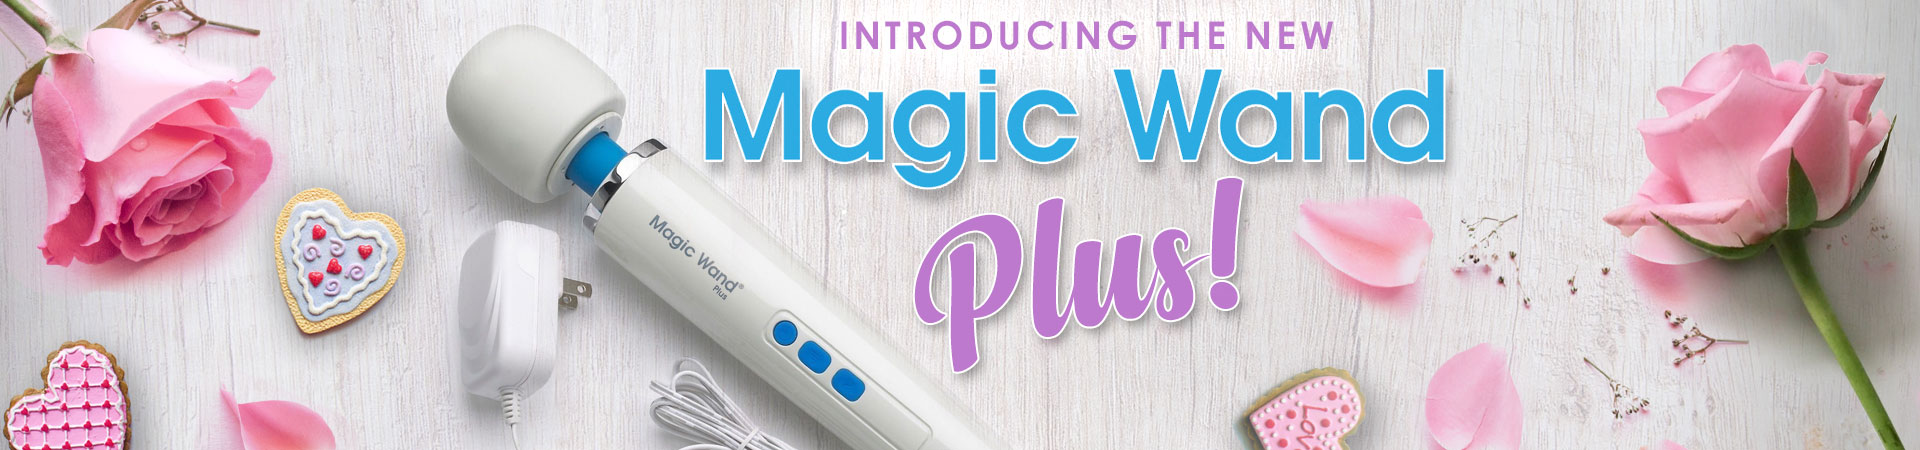 Introducing The New Magic Wand Plus!